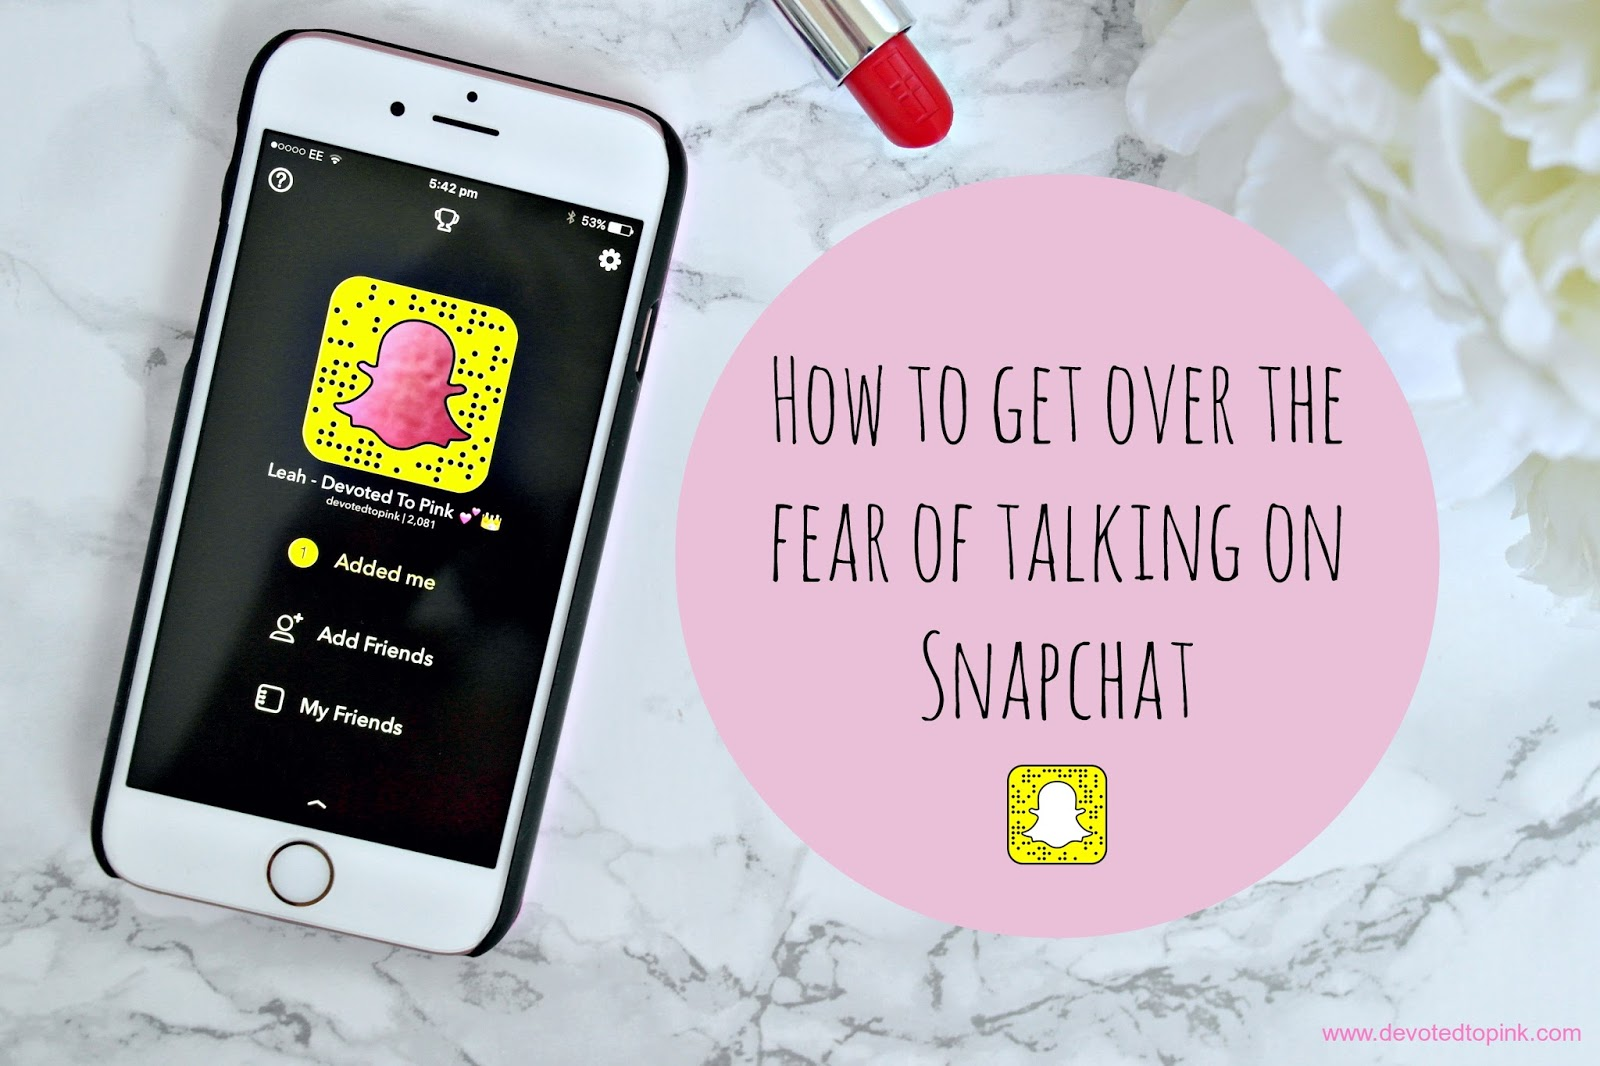 How To Get Over The Fear Of Talking On Snapchat